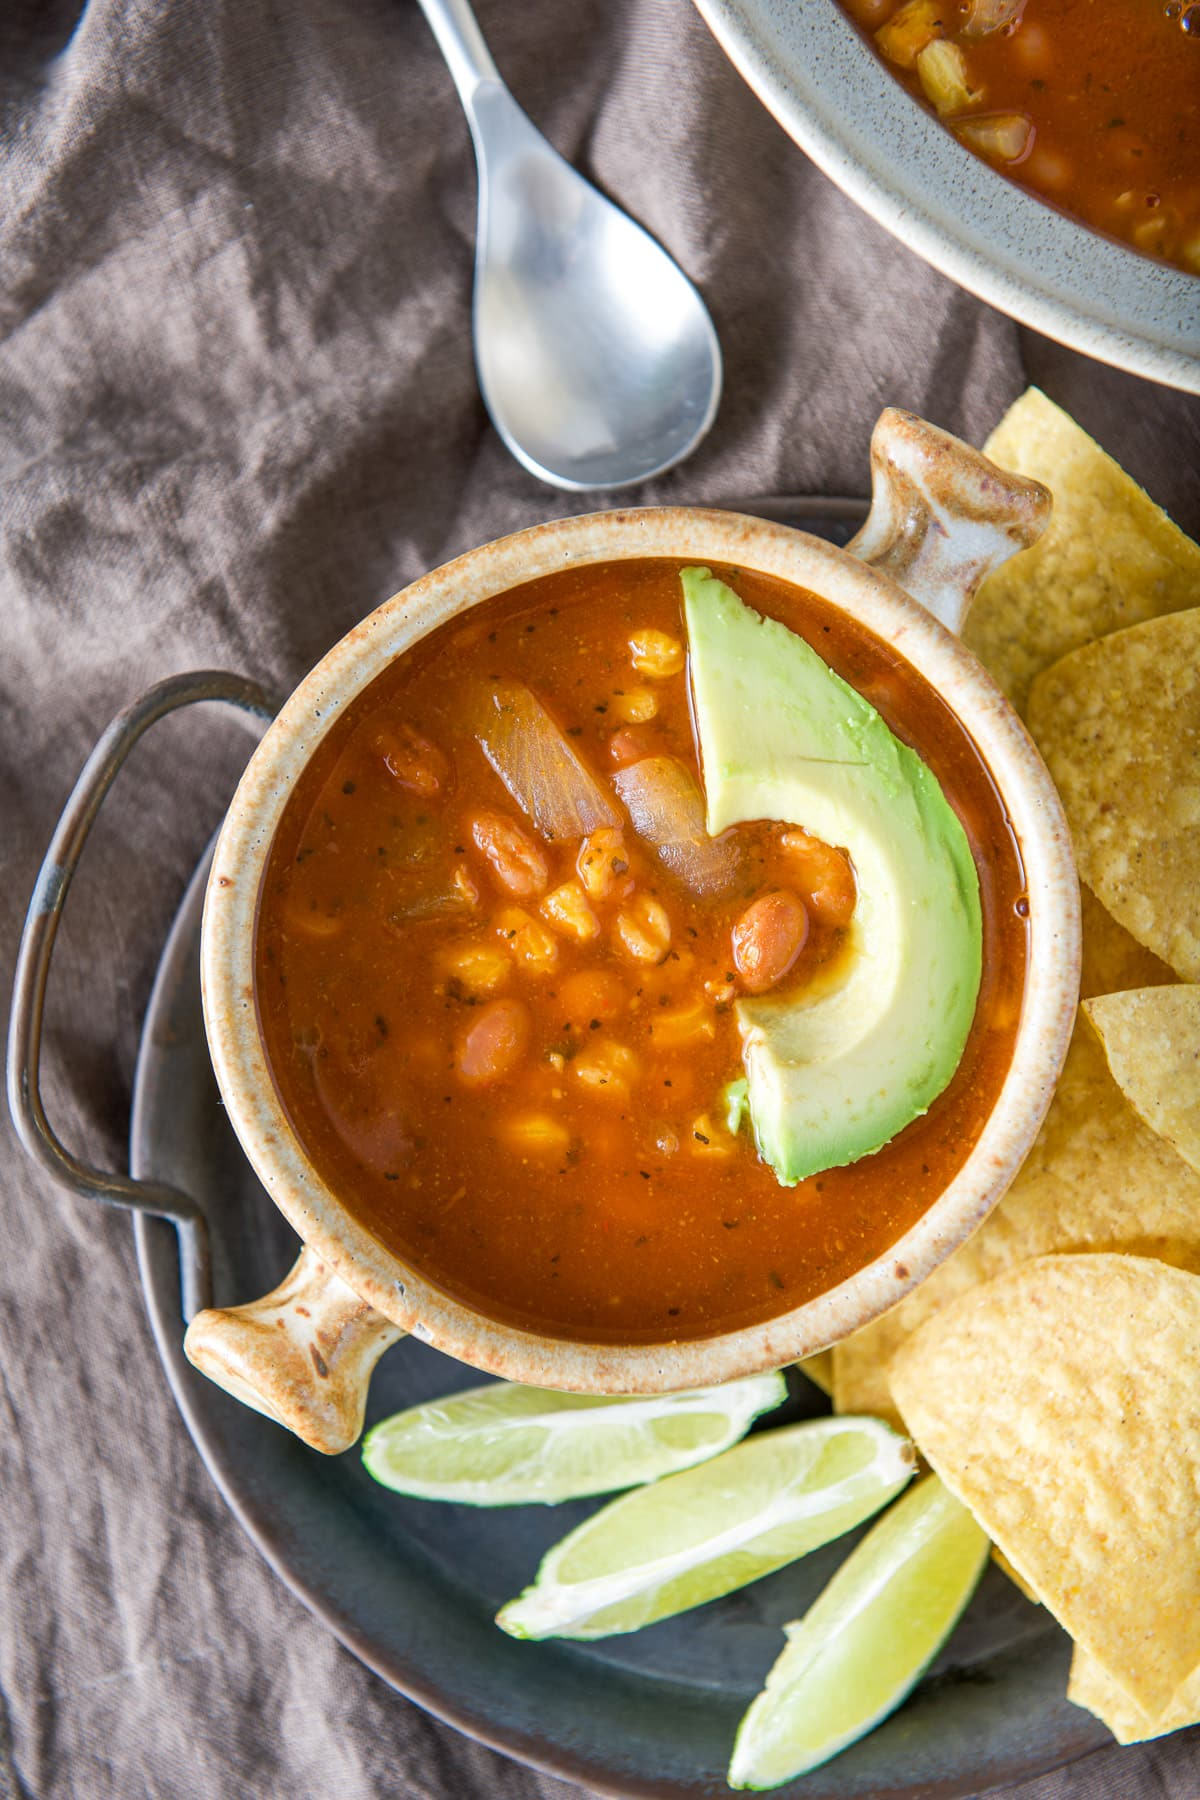 Overhead view of the soup in a crock with avocado, lime wedges and chips